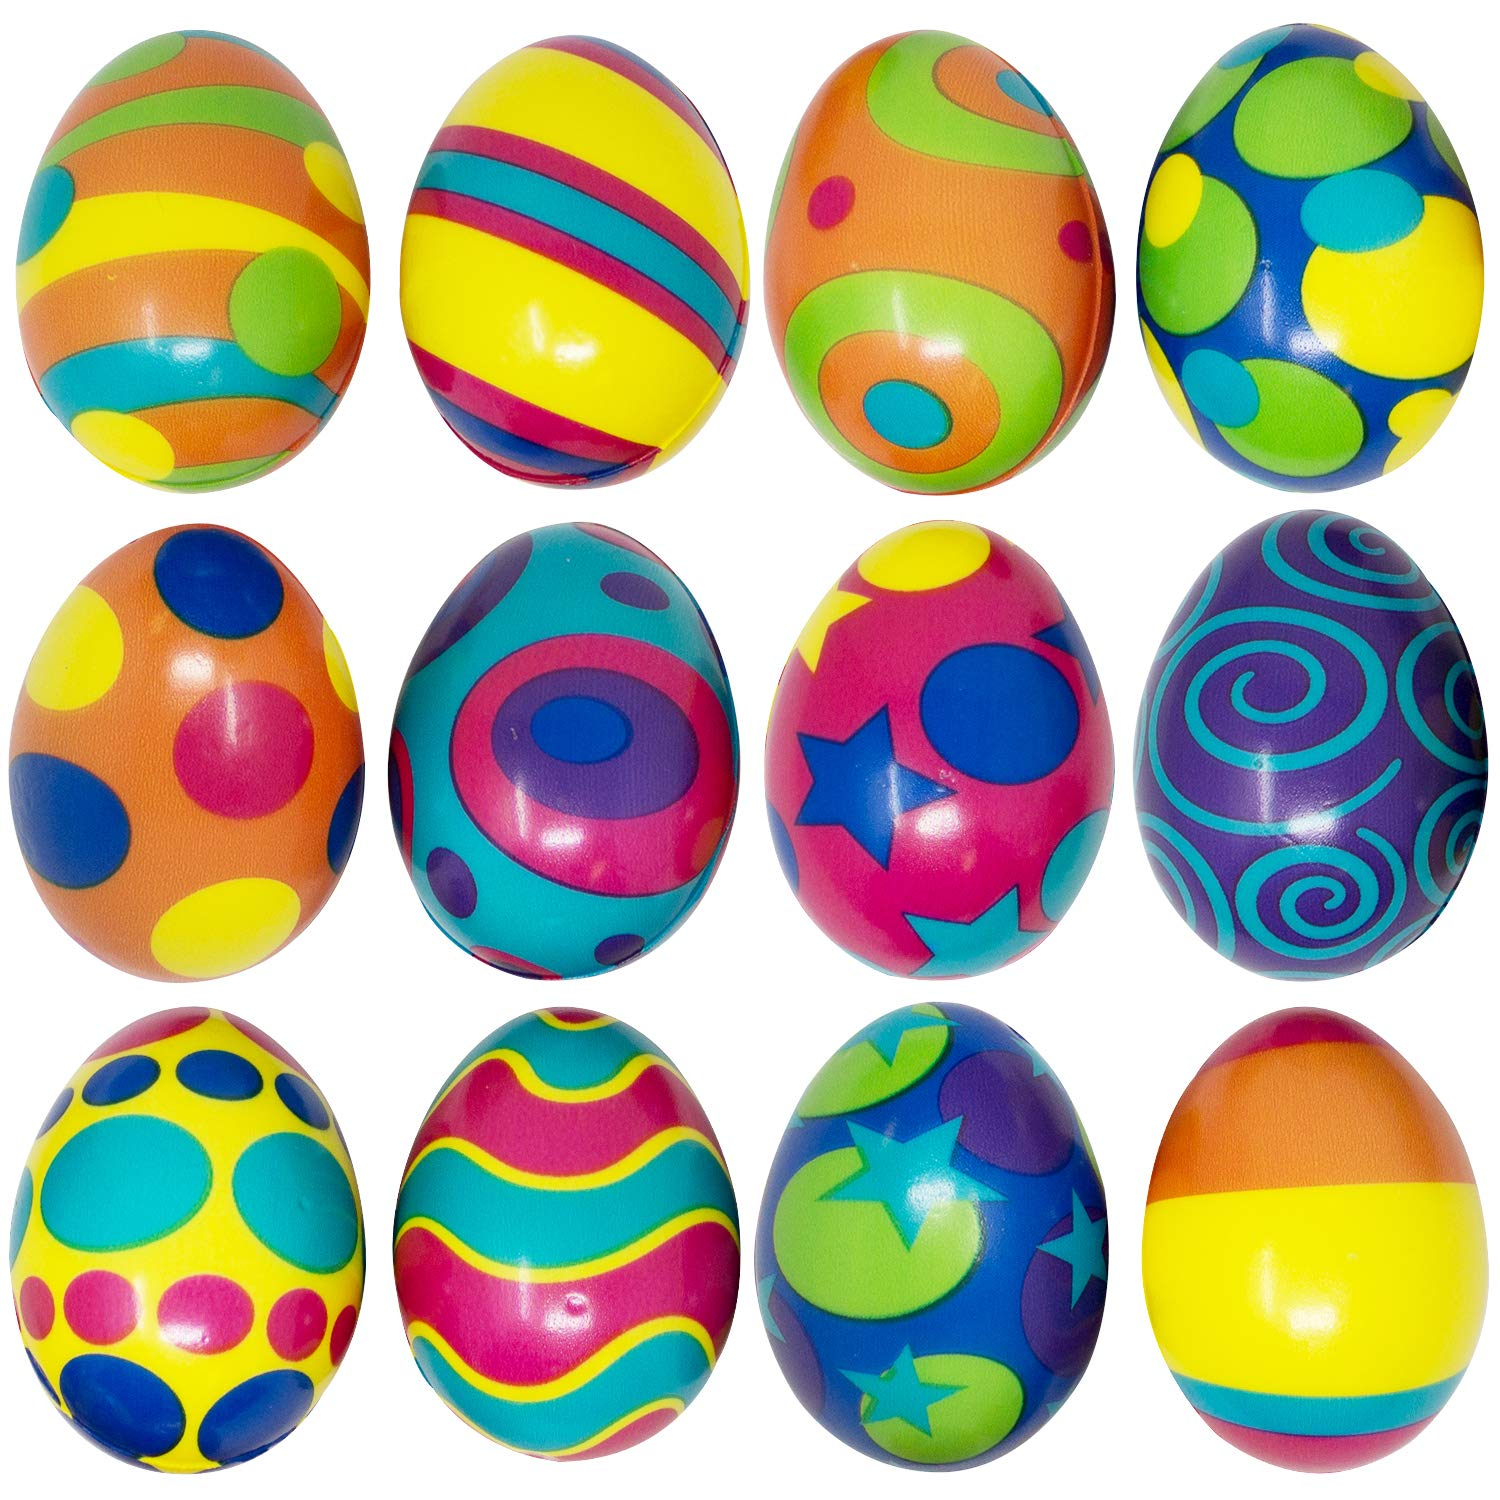 24 Pcs Colorful and Squishy Eggs for Easter Eggs